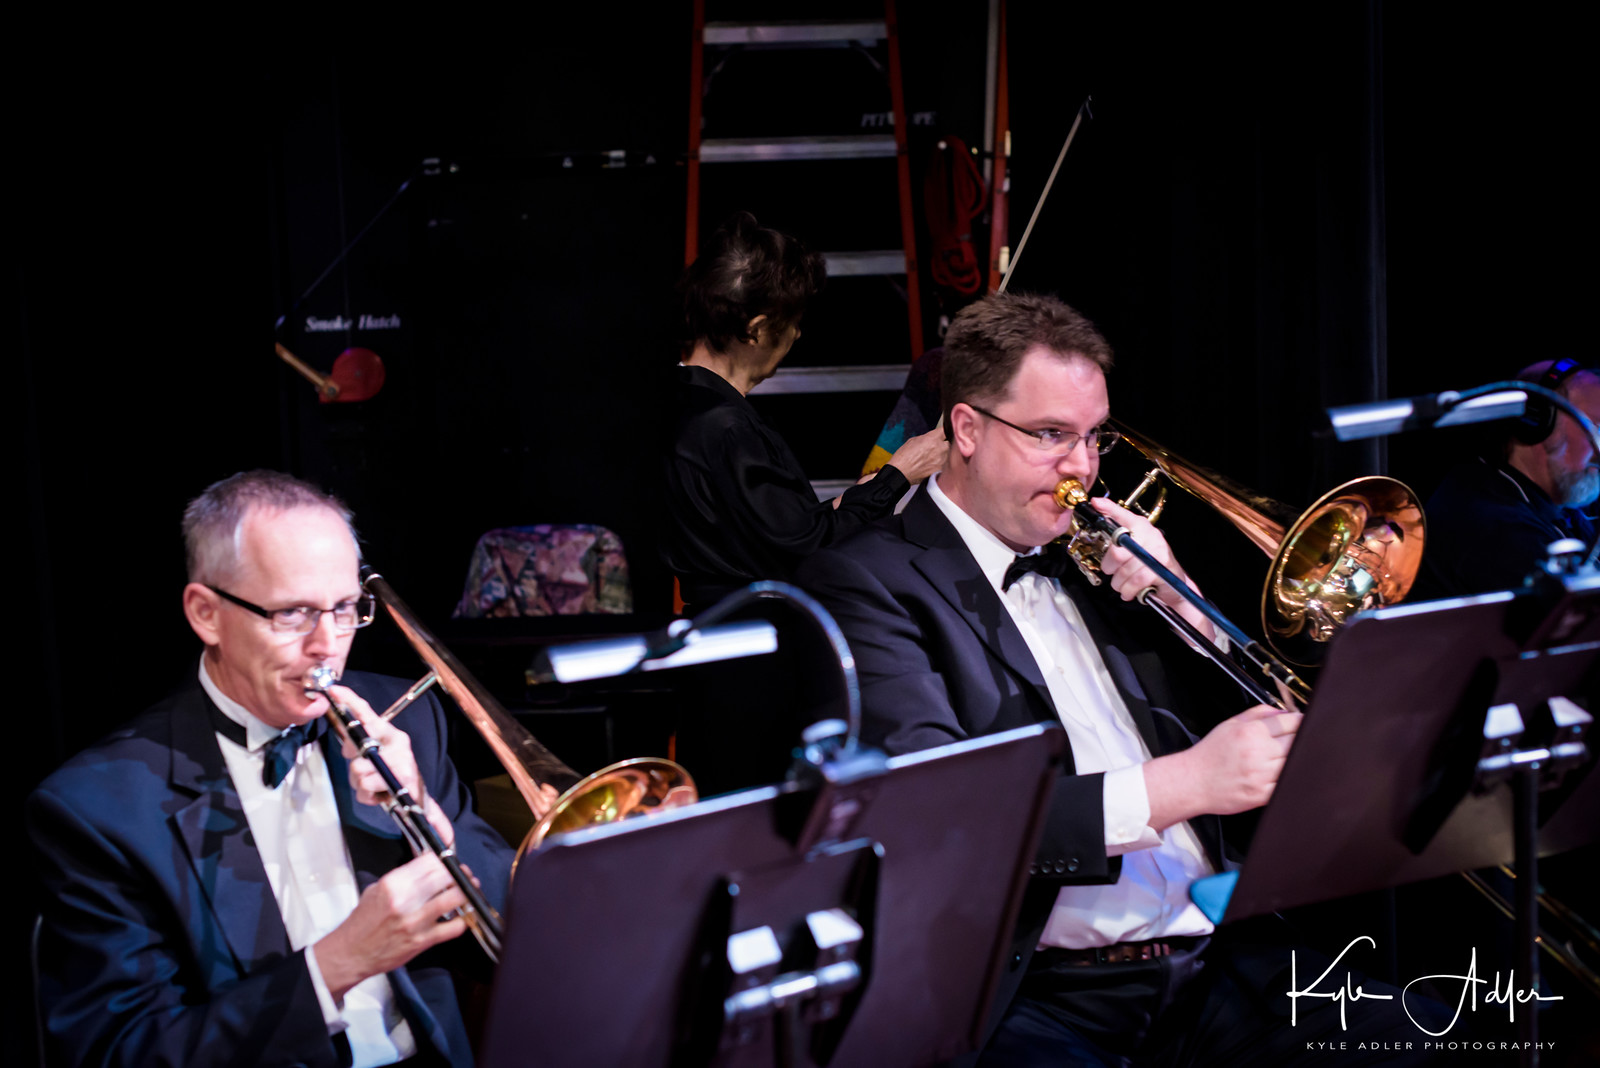 Musical Services - Want a string trio or quartet to play background music at your event? Or perhaps a harp and viola duo? Or maybe your outdoor event would be just perfect with a brass chorale?We can provide many different musical groups for a variety of occasions. Don't just take our word for it. Read what some recent customers have had to say after working with us...